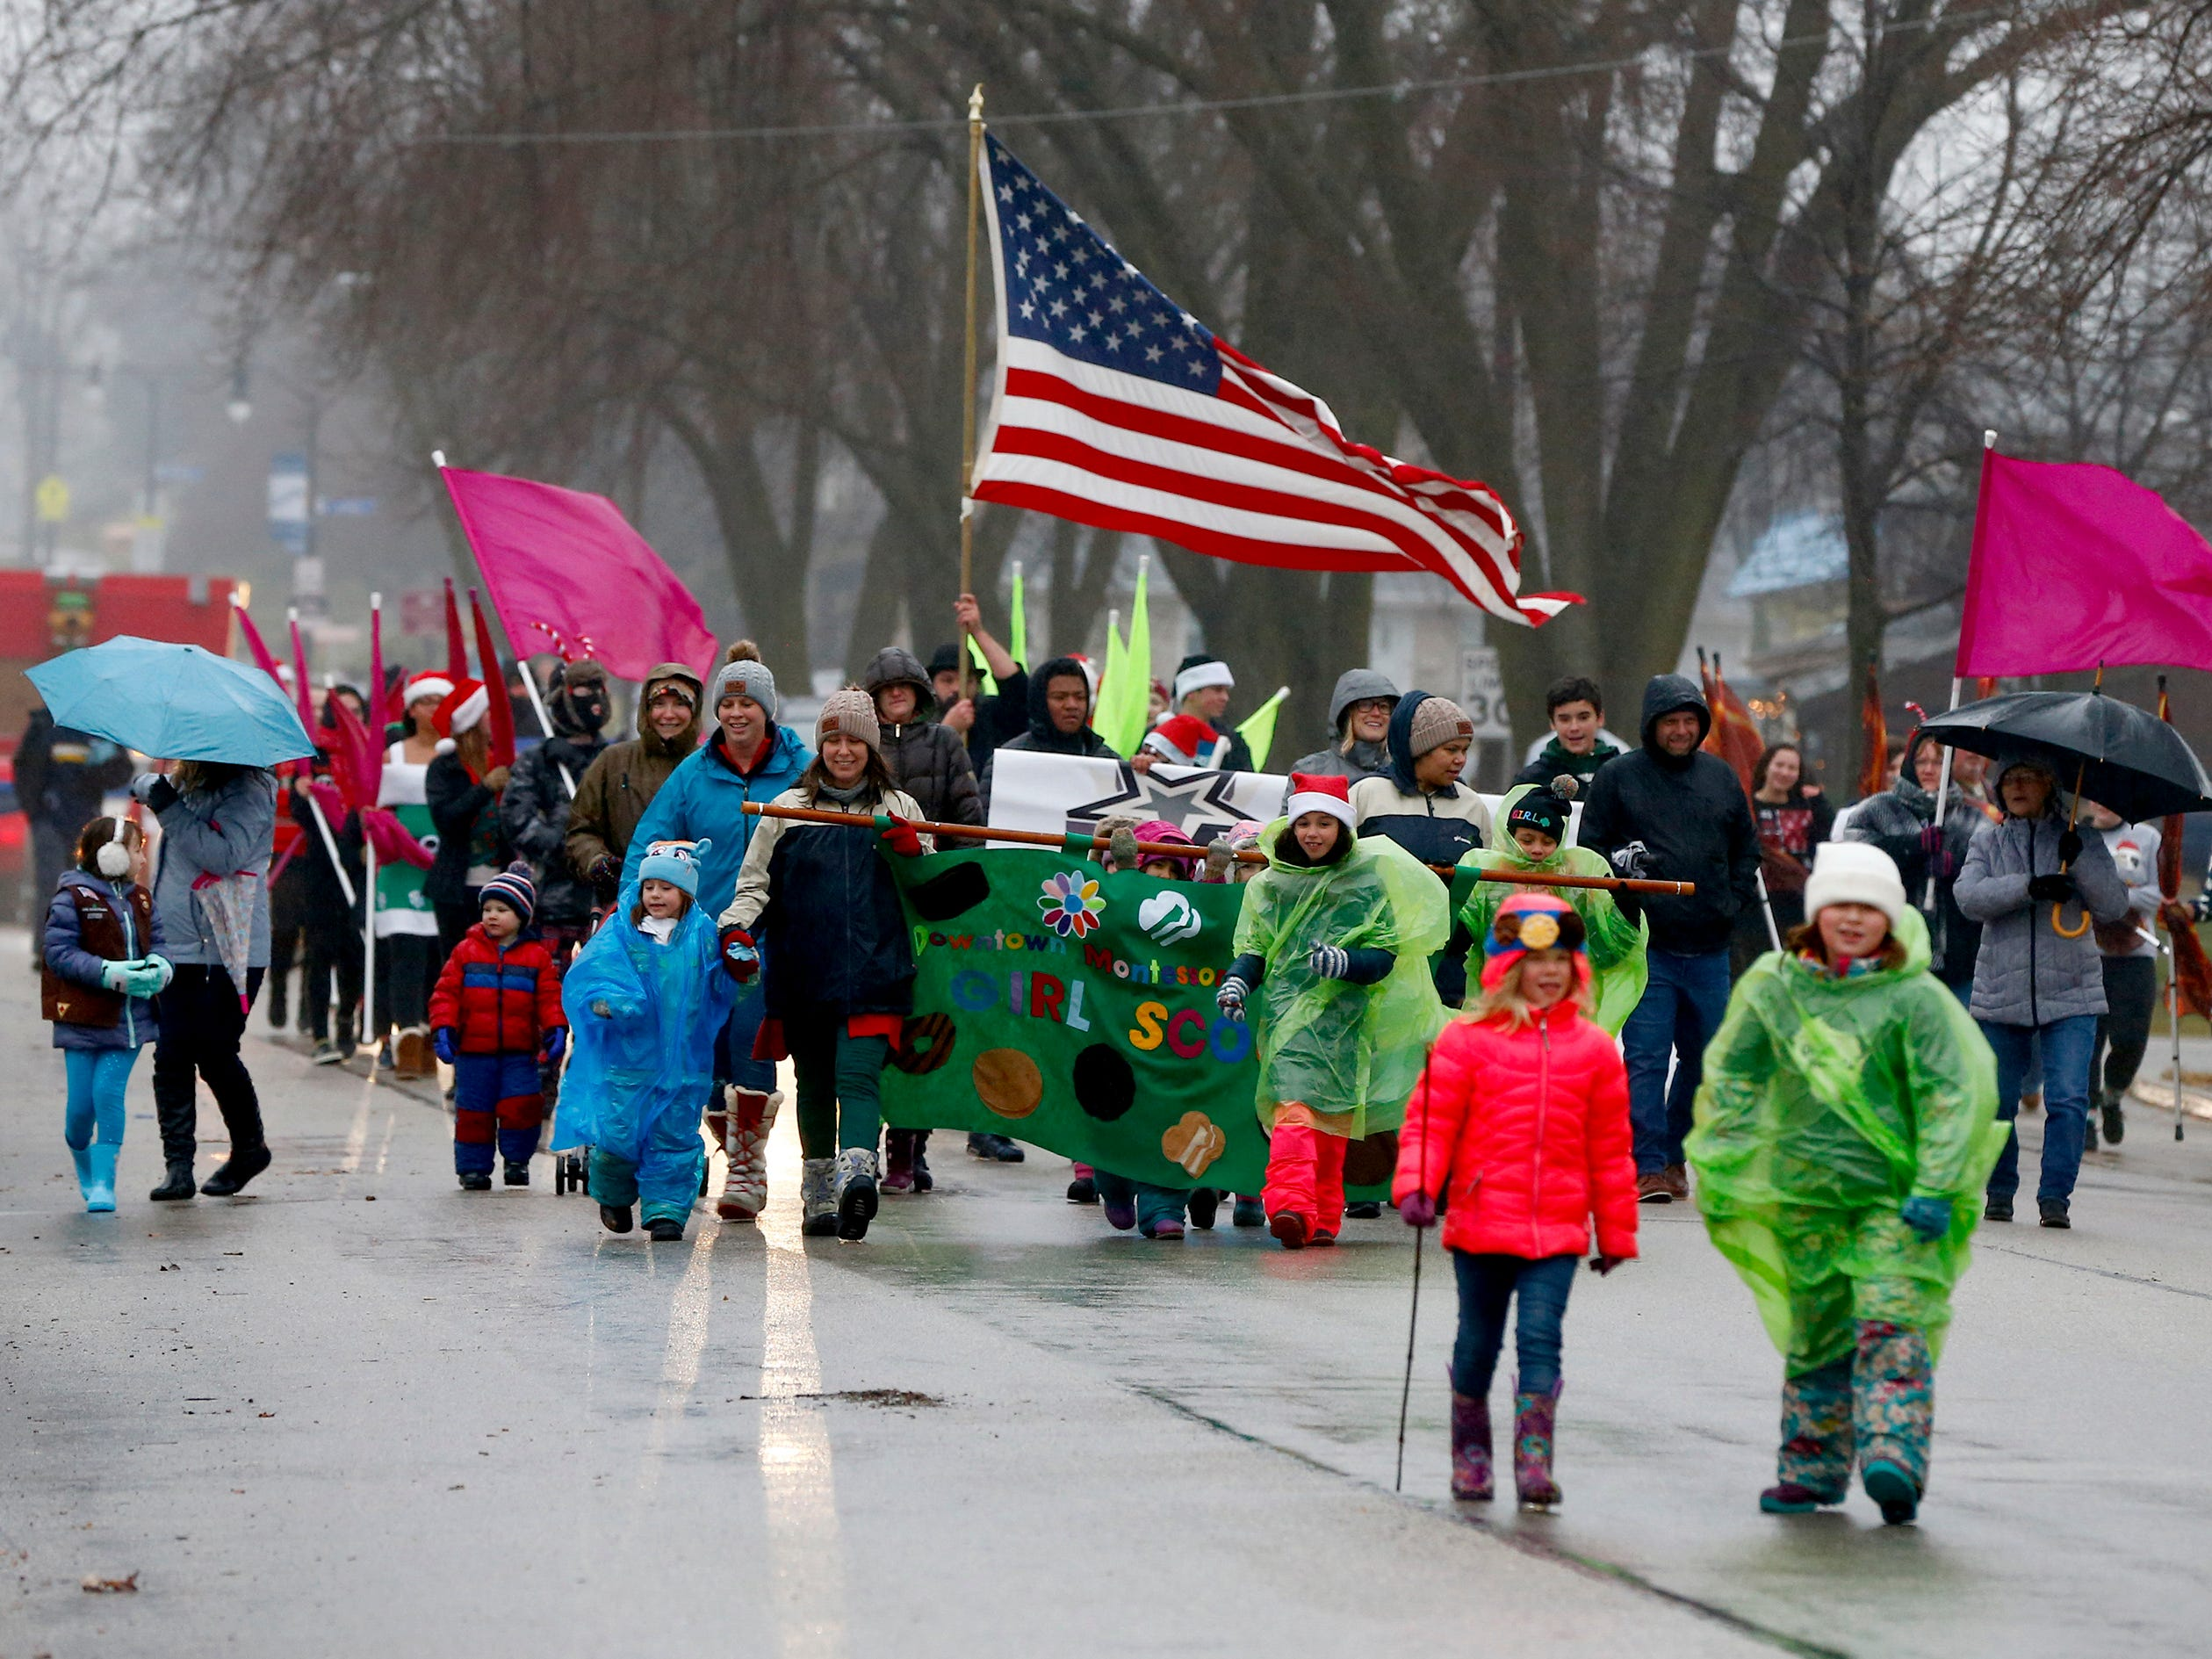 Cold rain and wind challenges marchers in the first city-sponsored St. Francis Christmas Parade on Dec. 1.